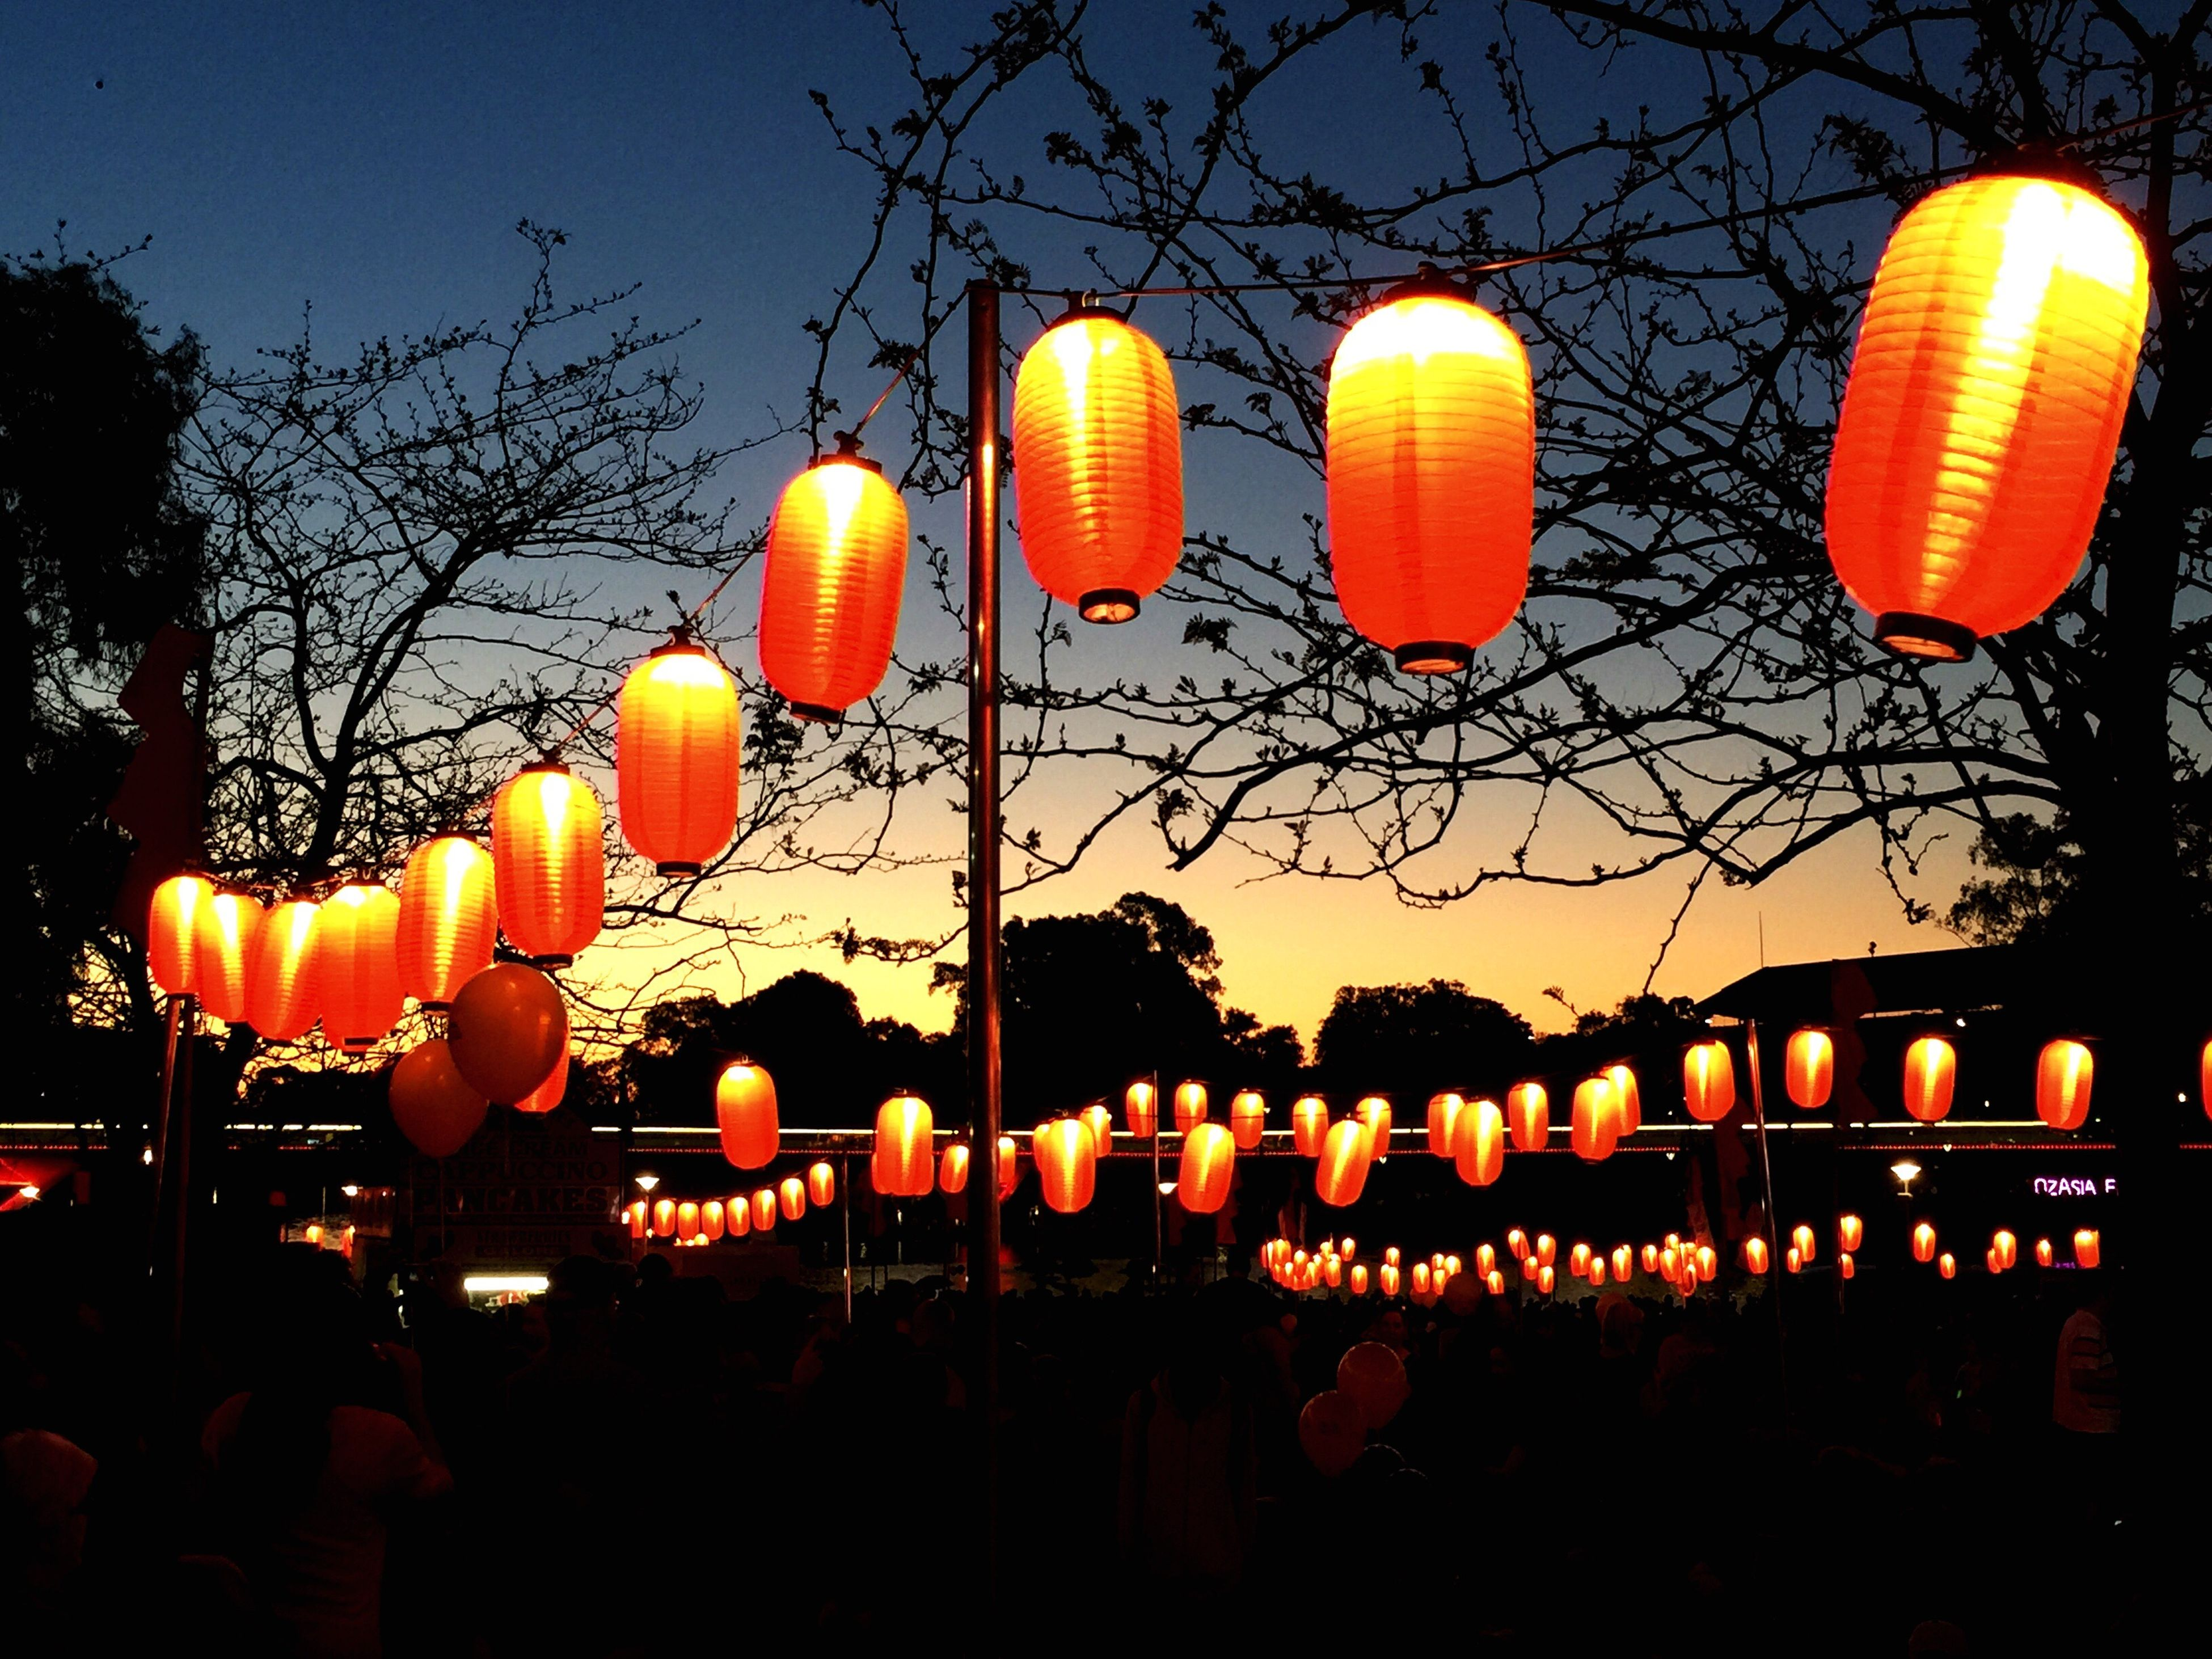 illuminated, lighting equipment, hanging, in a row, sky, decoration, clear sky, sunset, silhouette, street light, night, electricity, lantern, low angle view, electric light, dusk, celebration, orange color, tree, balloon